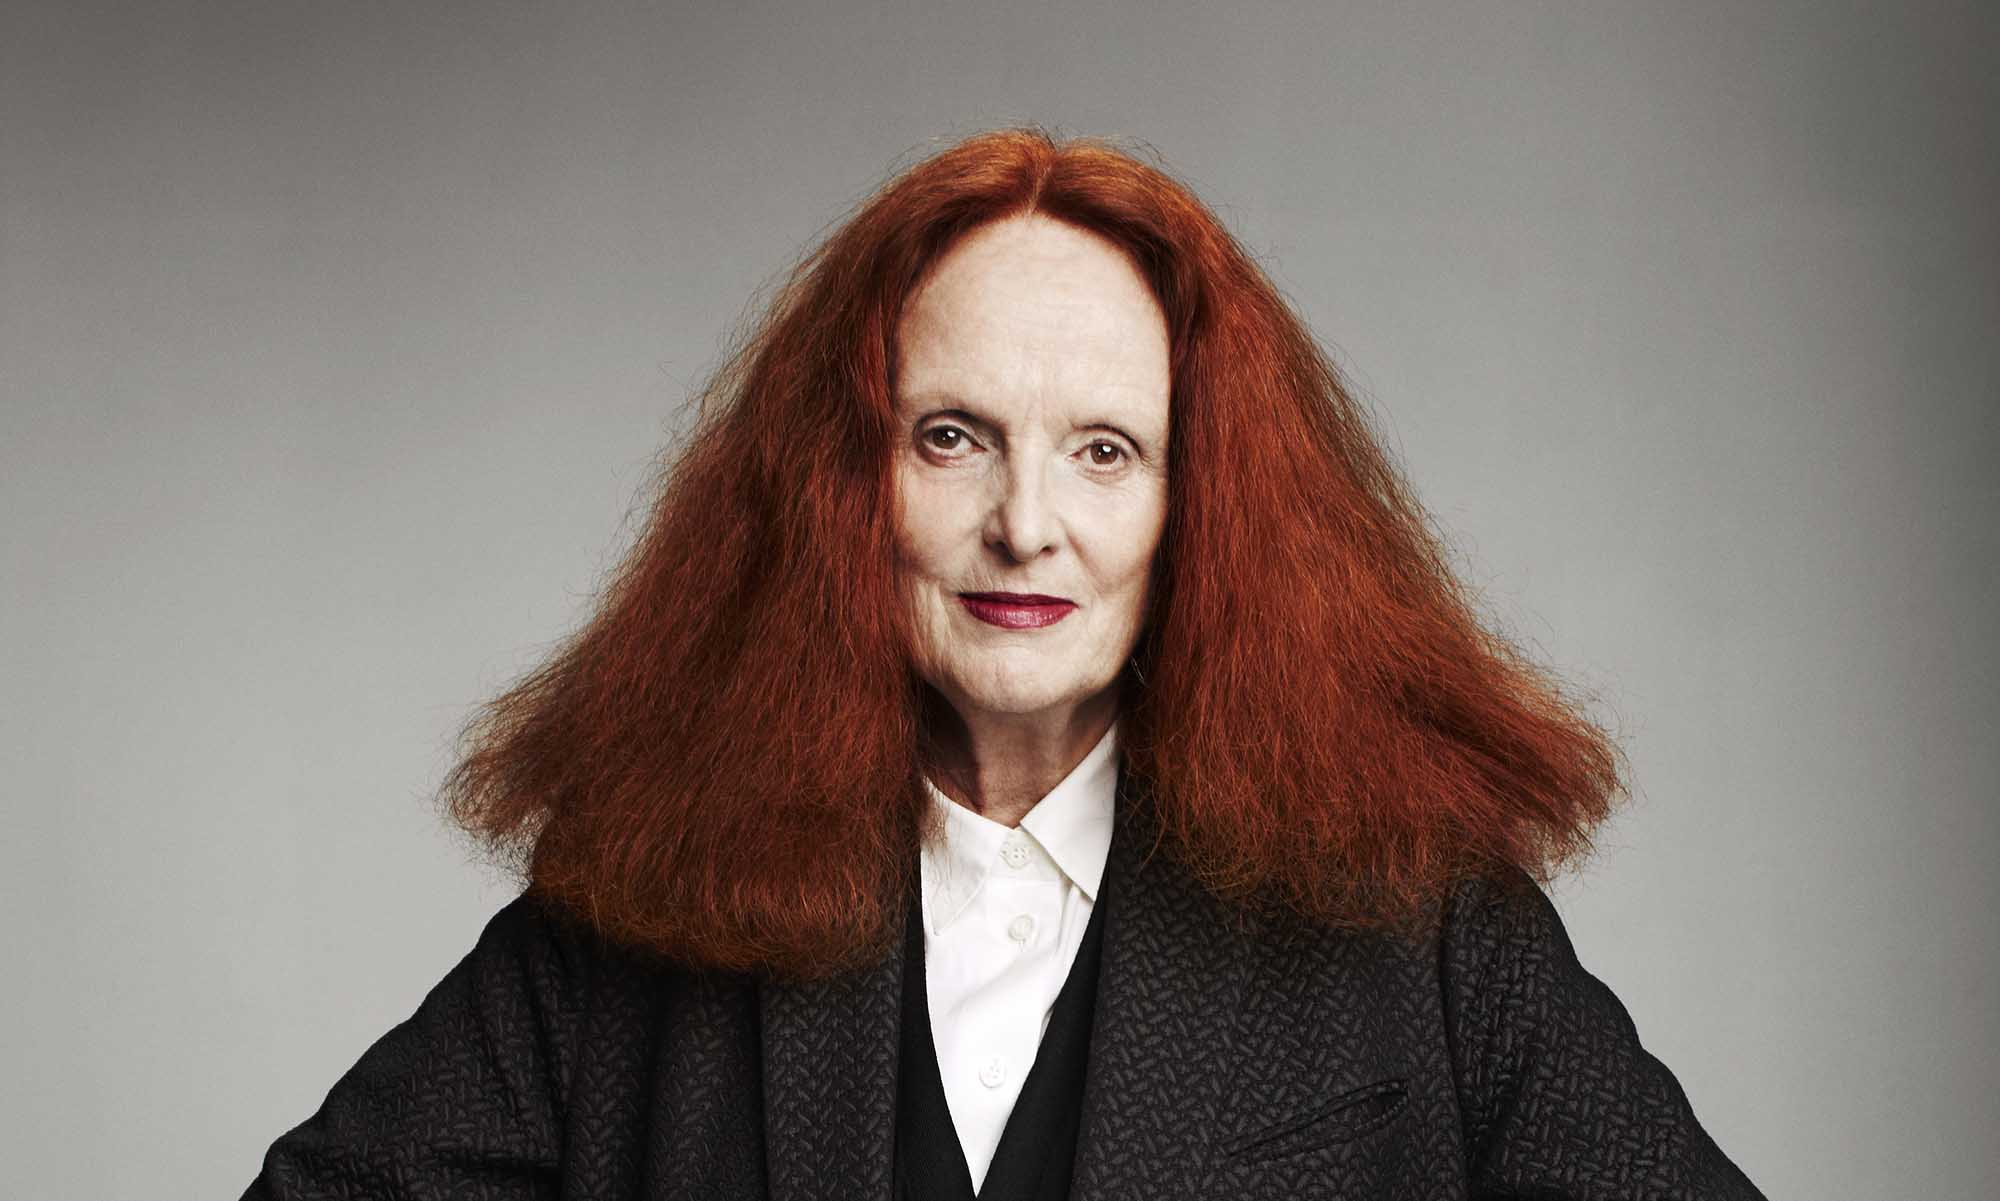 Grace Coddington announced she will step down as creative director at Vogue magazine.